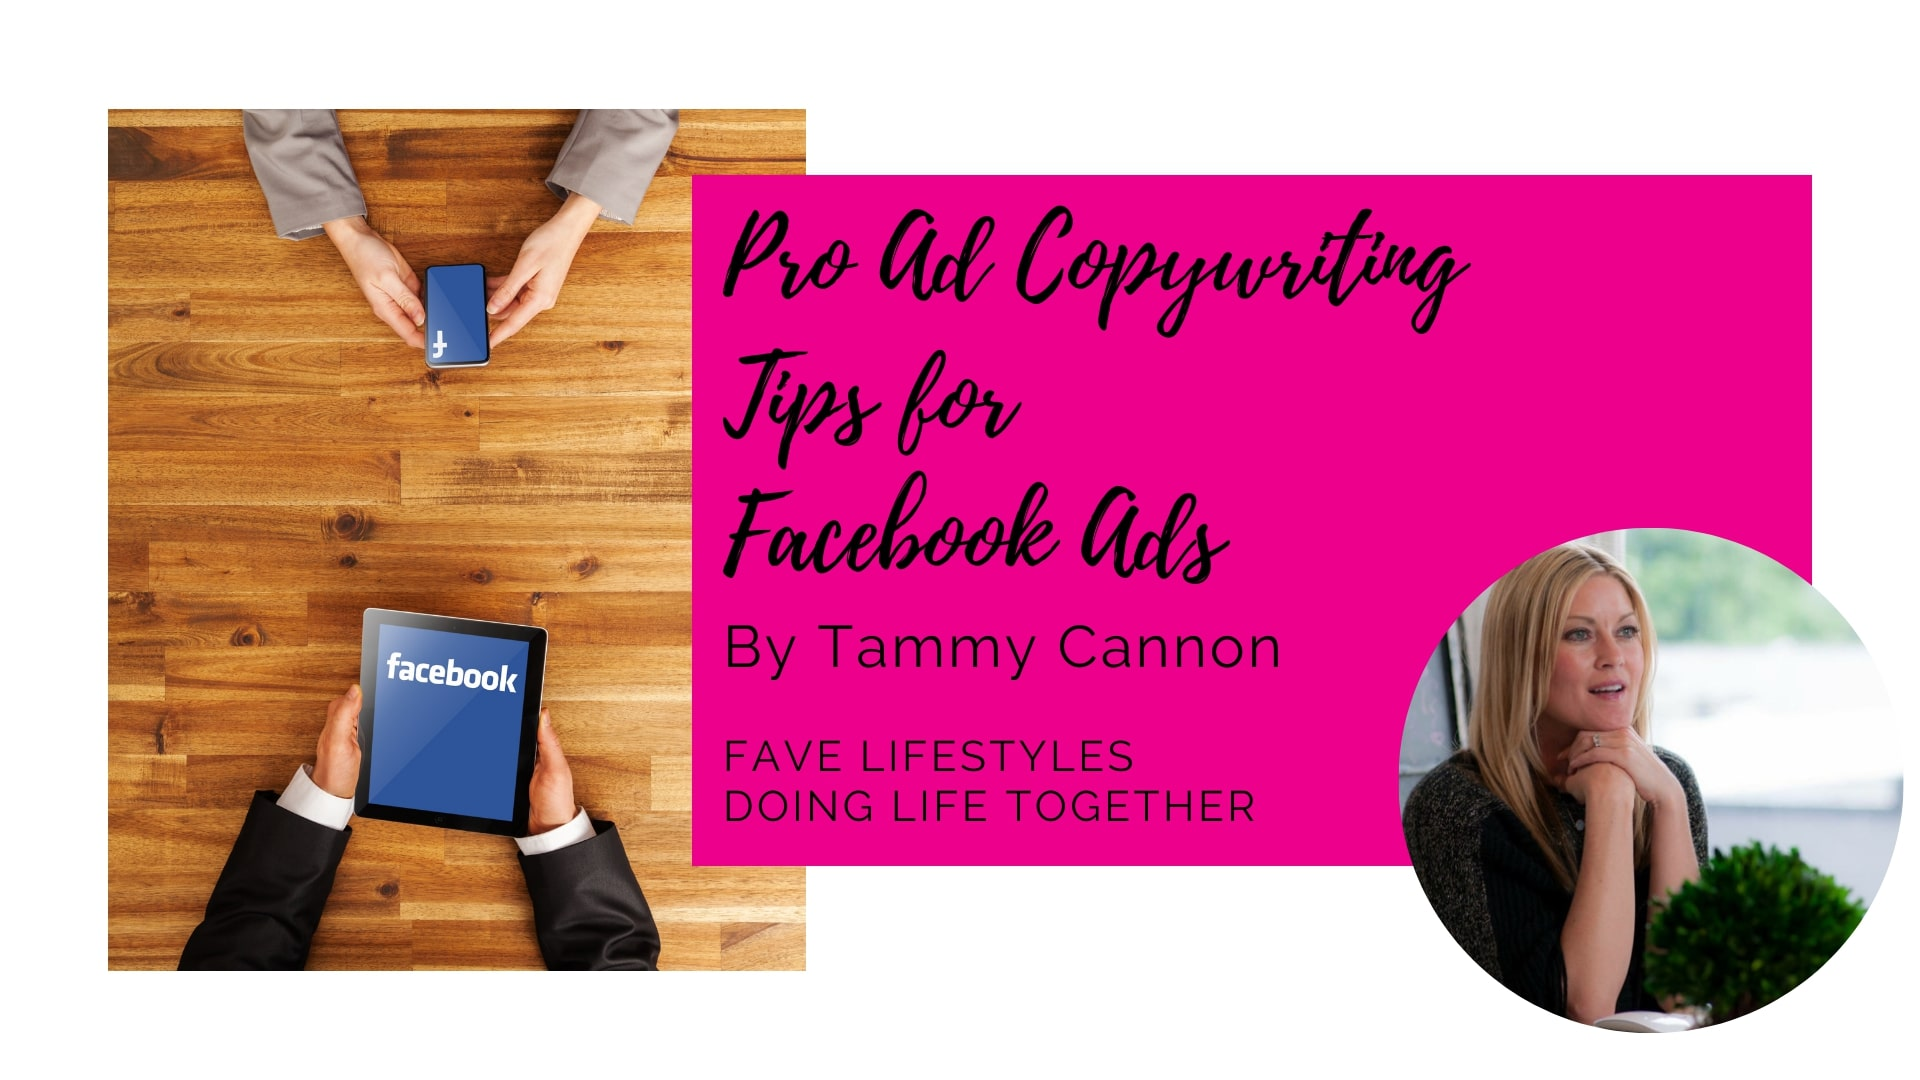 Pro Ad Copywriting Tips for Facebook Ads